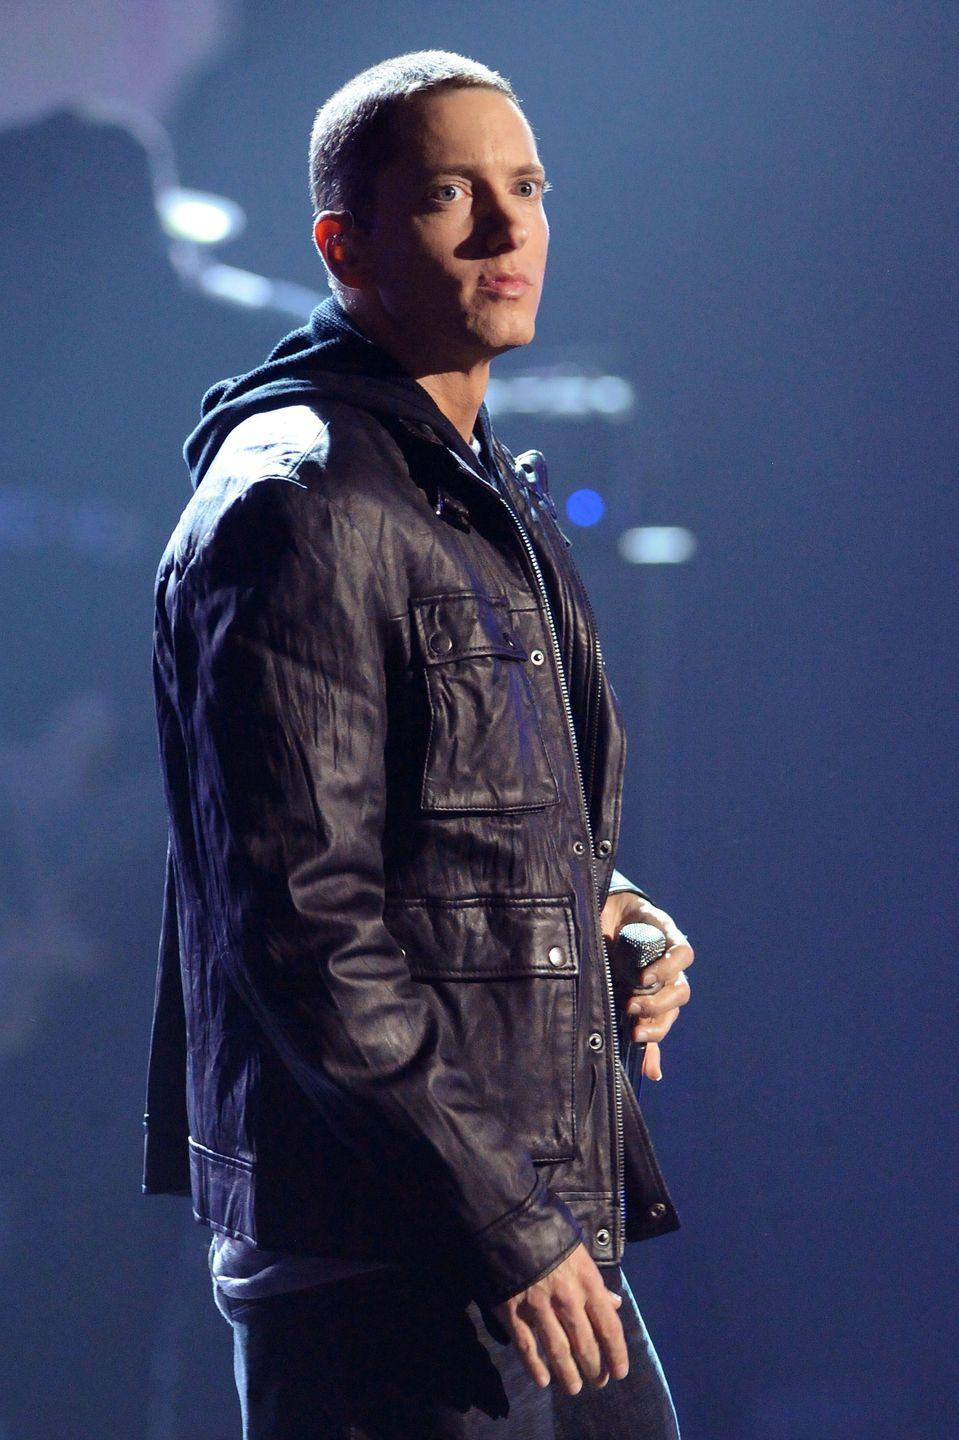 """<p>The Grammy-winning rapper was sued by mother Debbie Mathers-Briggs in 1999, when he was 26 years old. According to <em><a href=""""https://www.rollingstone.com/music/news/eminem-sued-by-his-mom-19990920"""" rel=""""nofollow noopener"""" target=""""_blank"""" data-ylk=""""slk:Rolling"""" class=""""link rapid-noclick-resp"""">Rolling</a> </em><em><a href=""""https://www.rollingstone.com/music/news/eminem-sued-by-his-mom-19990920"""" rel=""""nofollow noopener"""" target=""""_blank"""" data-ylk=""""slk:Stone"""" class=""""link rapid-noclick-resp"""">Stone</a></em>, Eminem """"slandered her in various broadcast and print interviews, by implying she was an unstable drug abuser."""" Debbie wanted $10 million in damages. Wowza.</p><p>According to Eminem's lawyer, Debbie had """"been threatening to sue him since the success of his single 'My Name Is...'""""</p><p><a href=""""http://www.mtv.com/news/1585515/freestyling-with-eminem-1999-in-the-loder-files/"""" rel=""""nofollow noopener"""" target=""""_blank"""" data-ylk=""""slk:Eminem claimed"""" class=""""link rapid-noclick-resp"""">Eminem claimed</a> he ended up having to raise young brother Nate on his own. According to Debbie, Eminem's lyrics about his upbringing were fabrications.</p><p>""""I wasn't happy when he made up a whole new life for himself — what mother wants to be known as a pill-popping alcoholic who lives on welfare? To tell the truth, I was heartbroken. The lies started coming thick and fast — and not just from Marshall. ... I think he's forgotten the good times we had,"""" she <a href=""""http://www.mtv.com/news/1595061/eminems-mom-tells-her-side-of-the-story-in-new-memoir/"""" rel=""""nofollow noopener"""" target=""""_blank"""" data-ylk=""""slk:told MTV News"""" class=""""link rapid-noclick-resp"""">told MTV News</a> in 2008, while promoting her memoir, <em><a href=""""https://www.amazon.com/My-Son-Marshall-Eminem/dp/184454673X/ref=sr_1_2?ie=UTF8&qid=1519231115&sr=8-2&keywords=My+Son+Marshall%2C+My+Son+Eminem&tag=syn-yahoo-20&ascsubtag=%5Bartid%7C10049.g.37186525%5Bsrc%7Cyahoo-us"""" rel=""""nofollow noopener"""" target=""""_blank"""" data-ylk=""""slk:My Son """